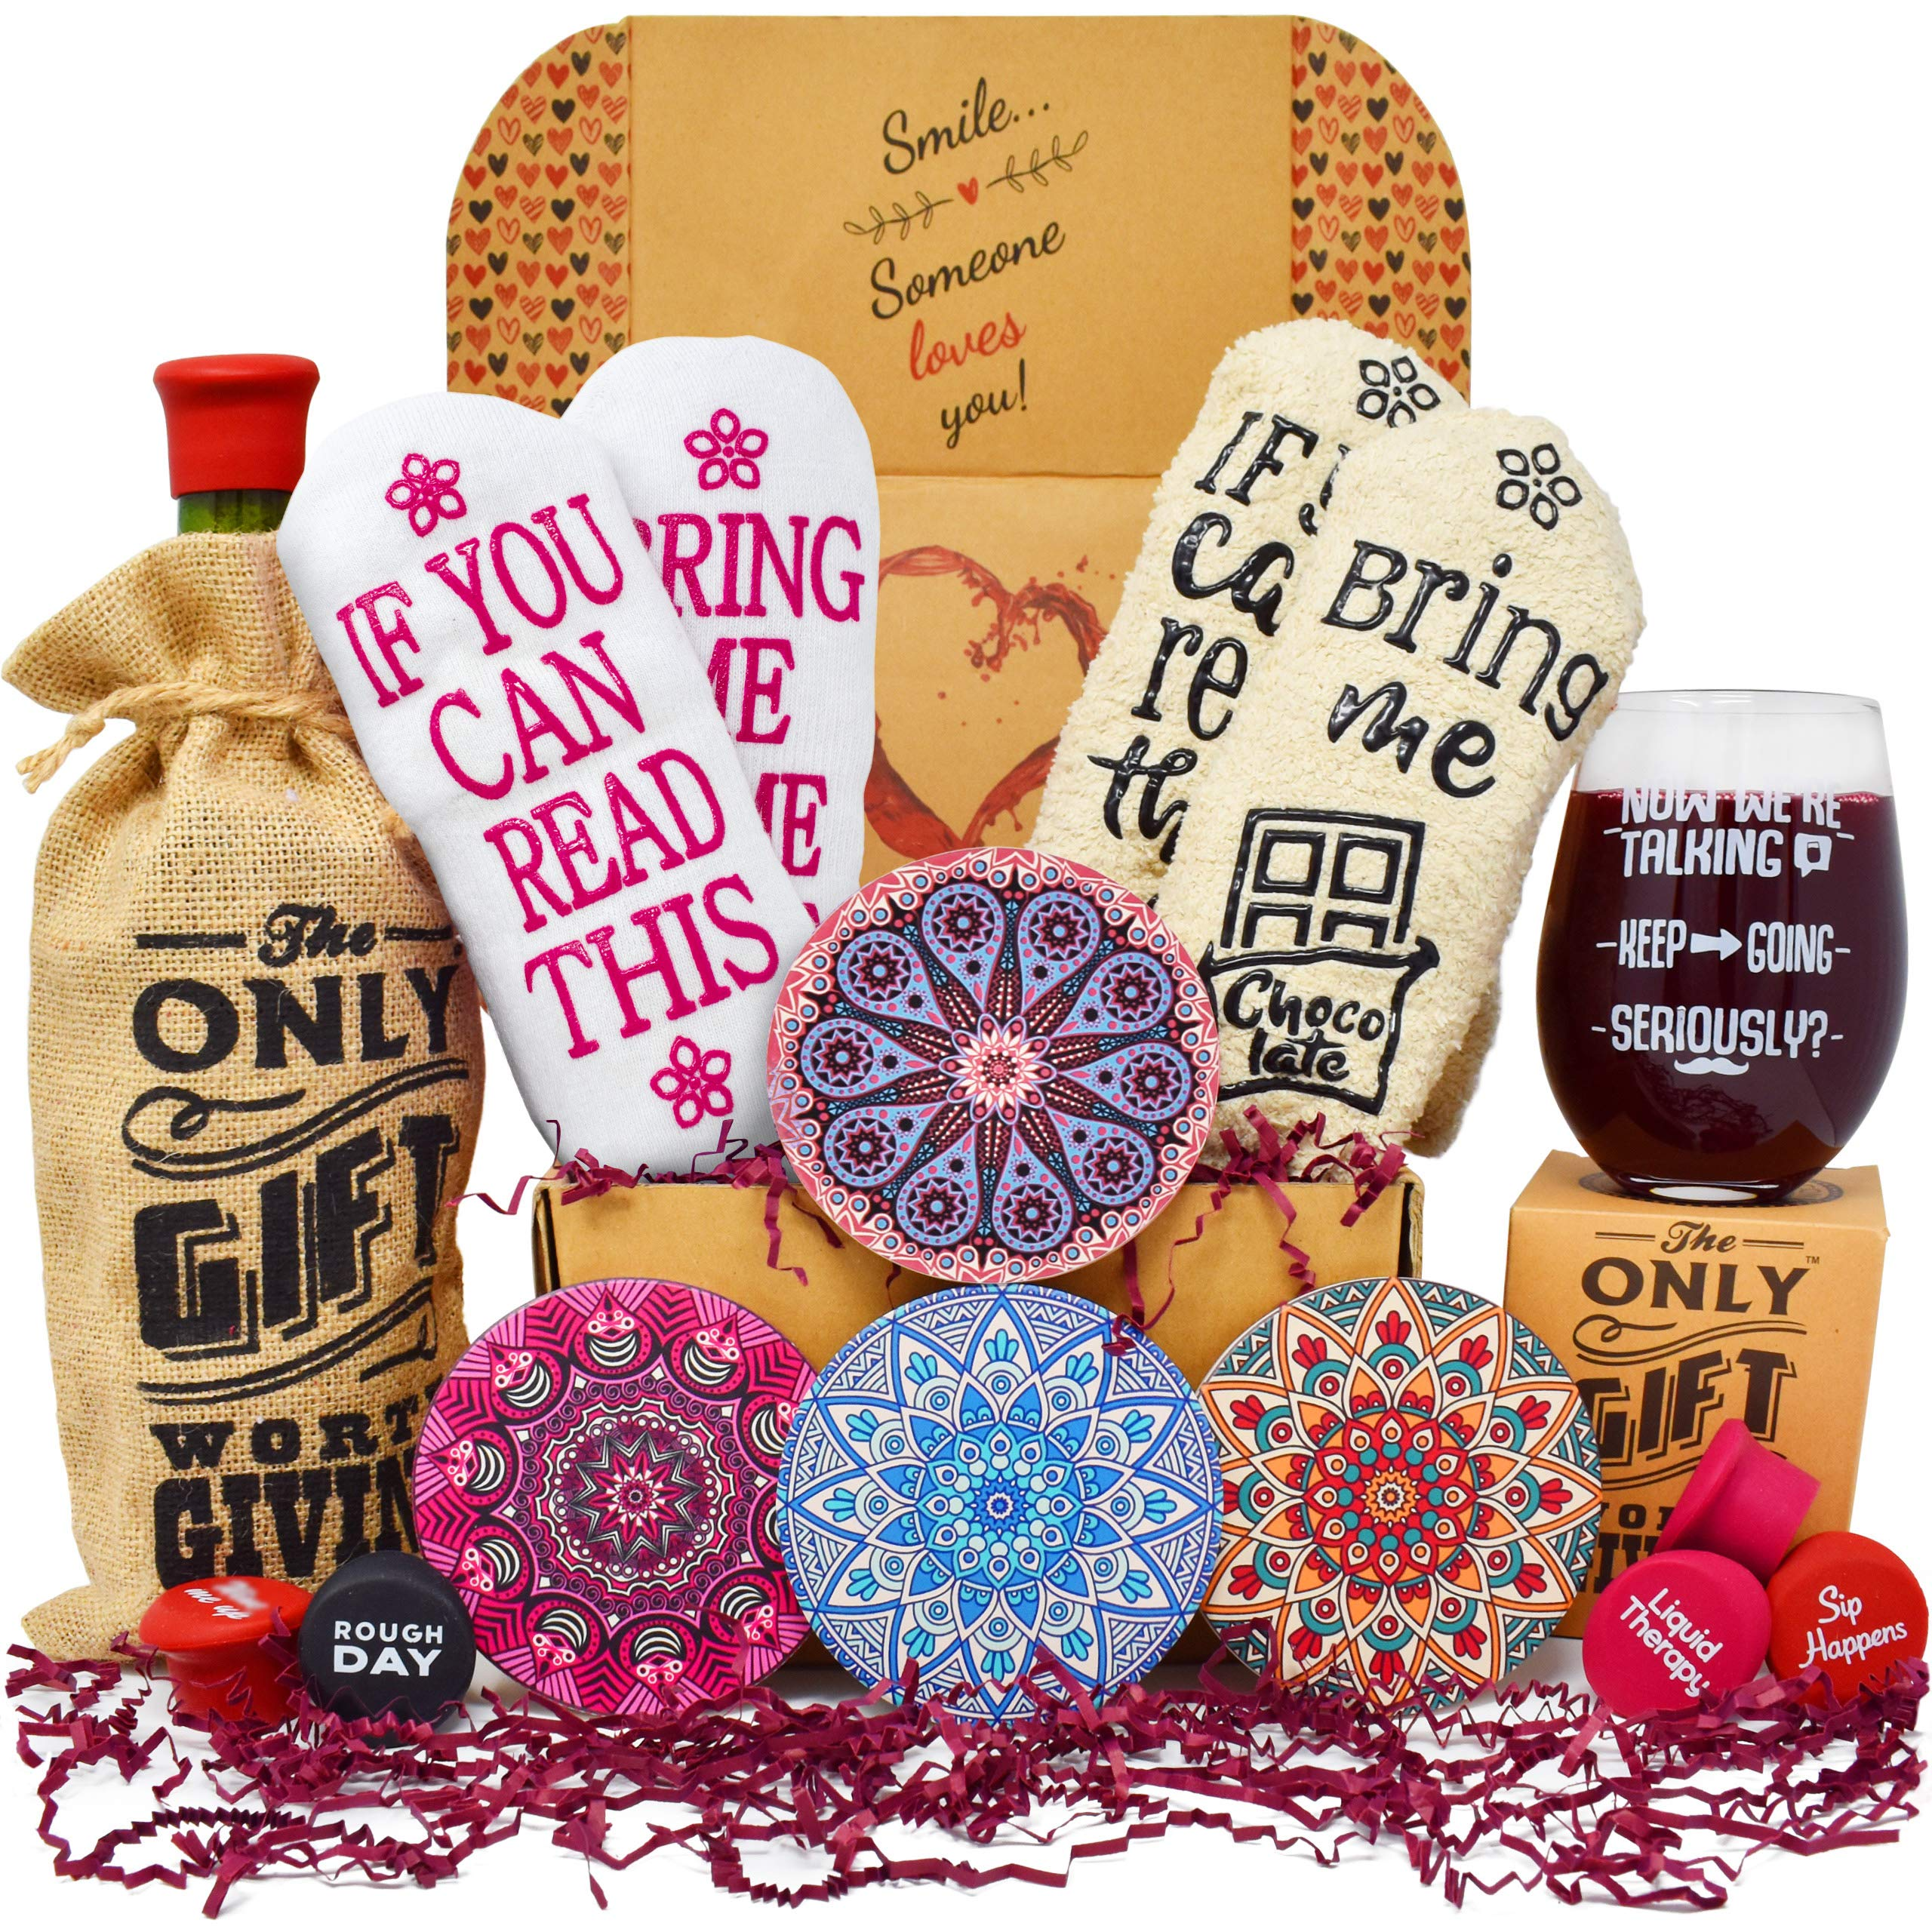 Gift Baskets for Women Best Birthday Gifts For Her: 2 pairs of Funny socks, Funny glass, Coasters, Bottle stoppers and a Bottle tote. Best friend gifts for women Birthday Gift Box by The Only Gift Worth Giving